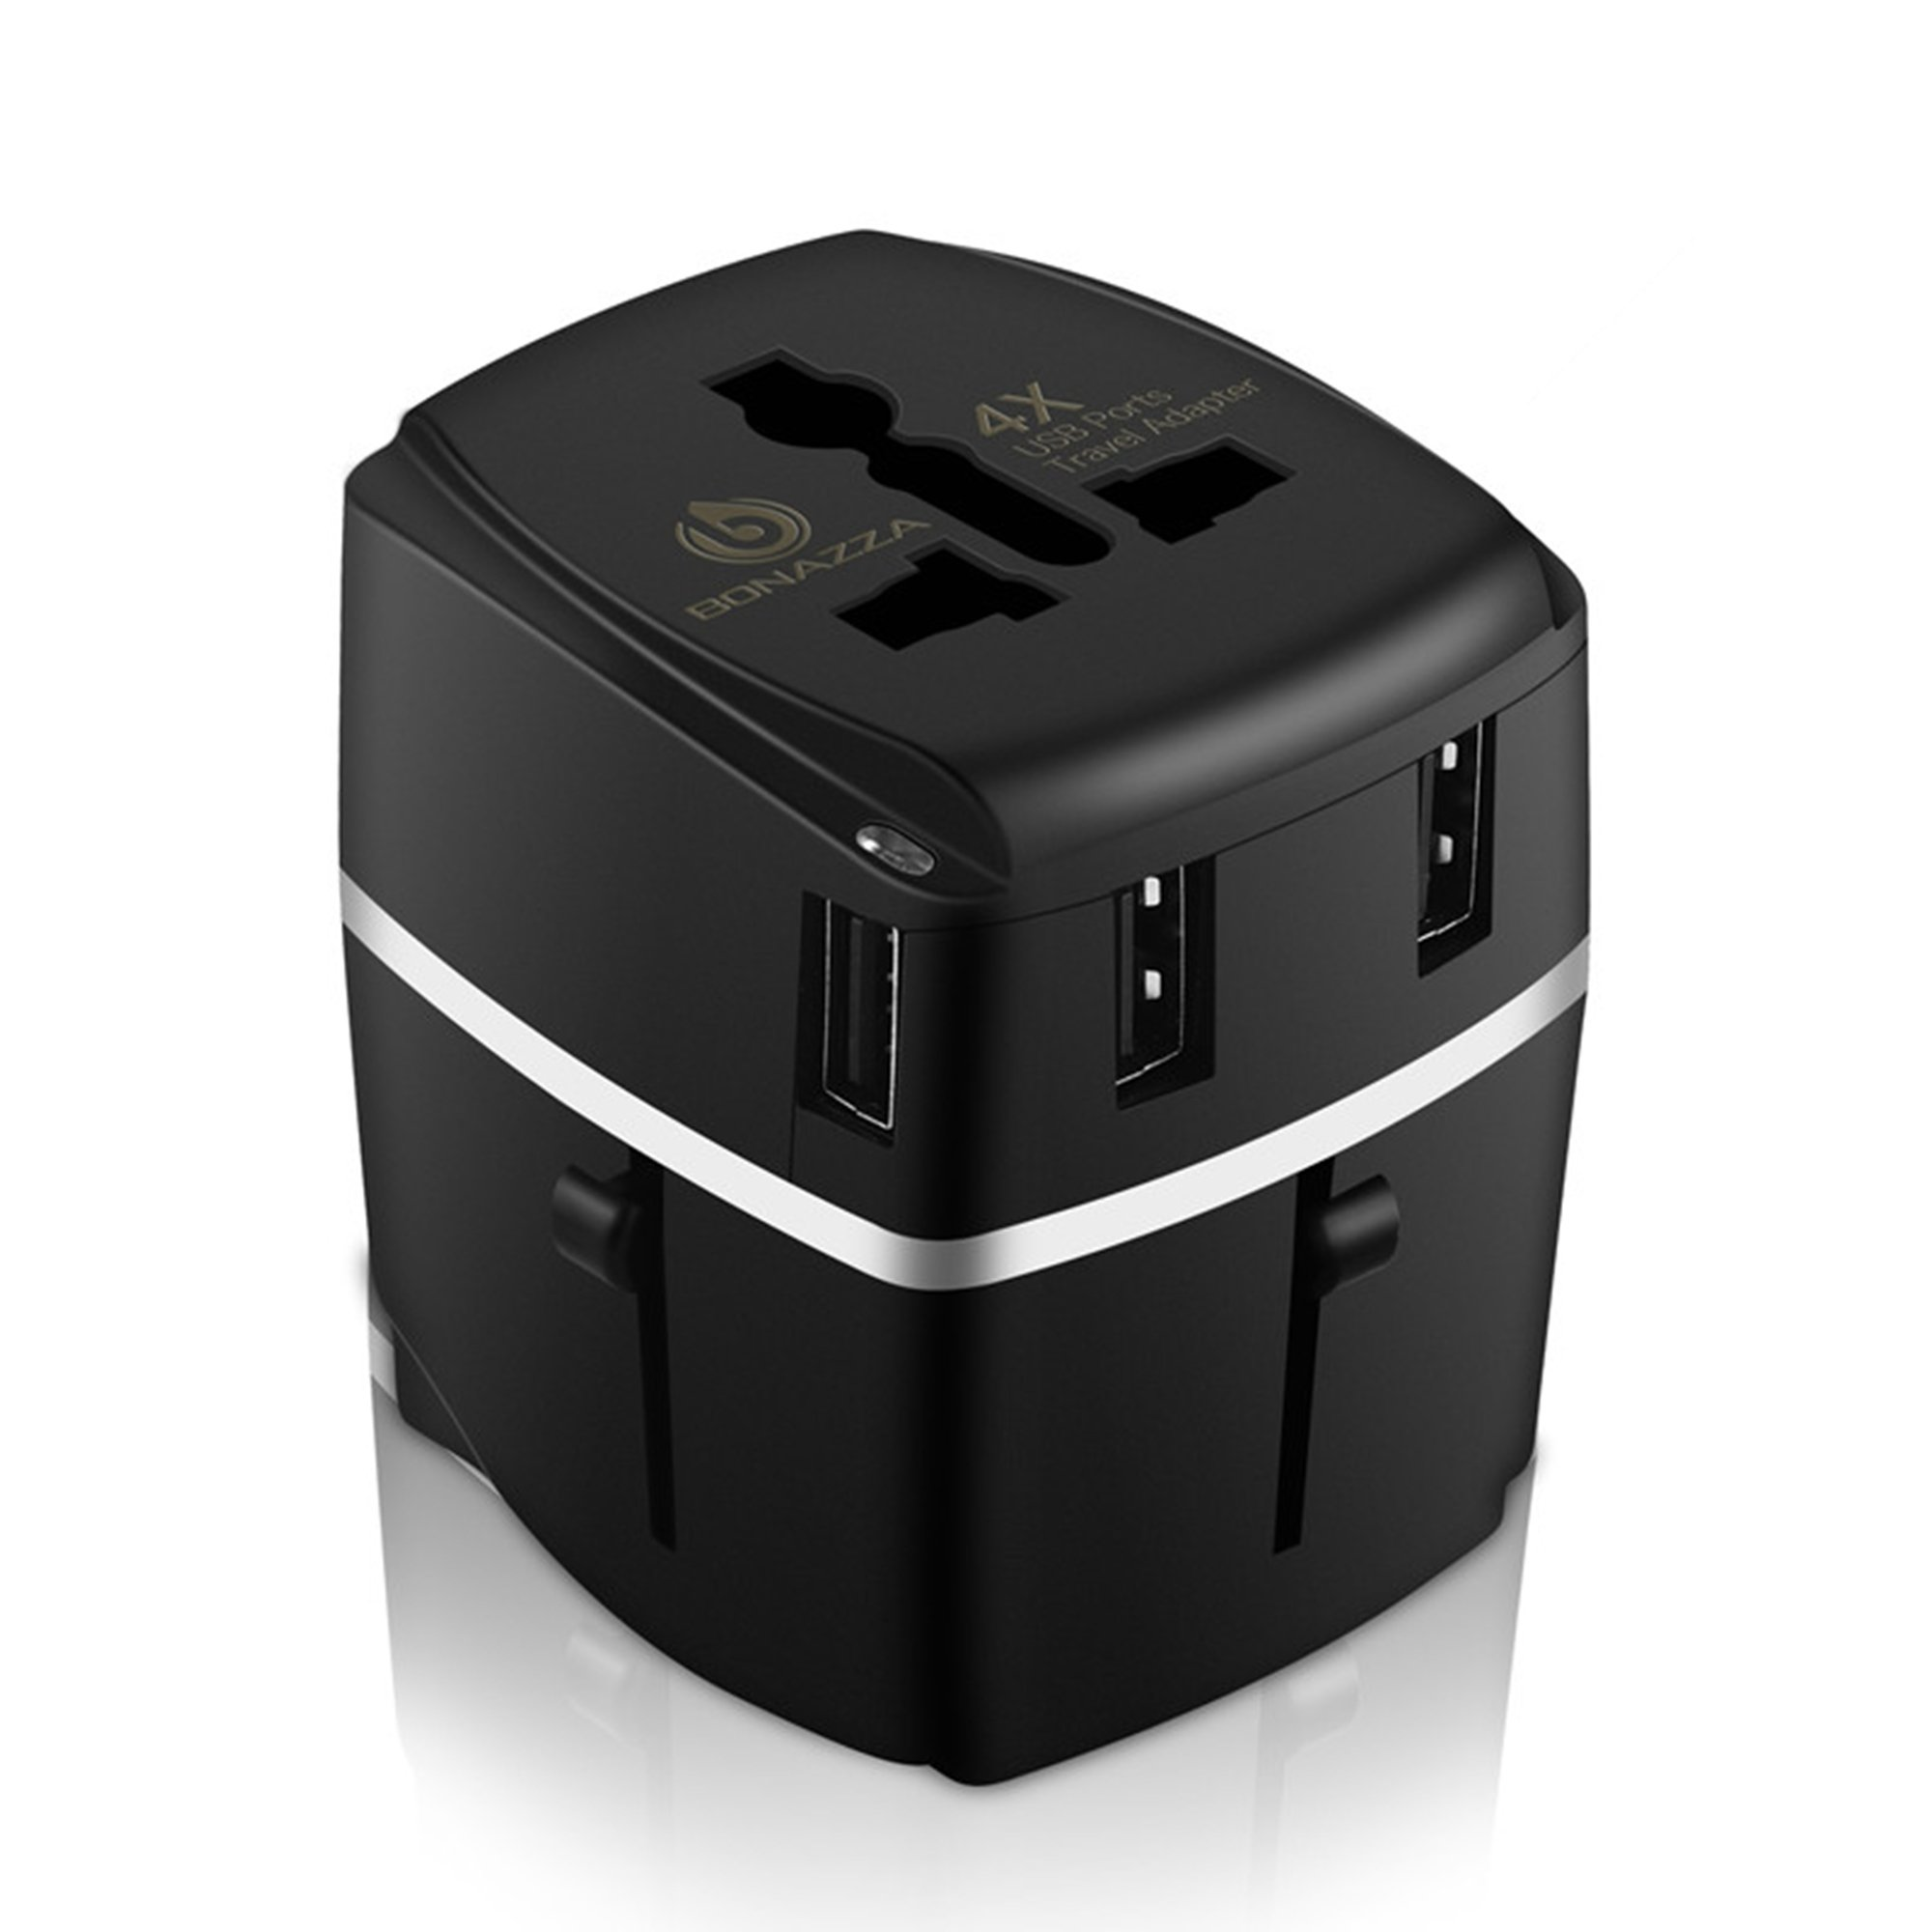 BONAZZA Universal International Travel Adapter Kit with 4Amps 4 USB Ports - UK, US, AU, Europe All in One Plug Adapter - Over 150 Countries & USB Power Adapter for iPhone, Android, All USB Devices